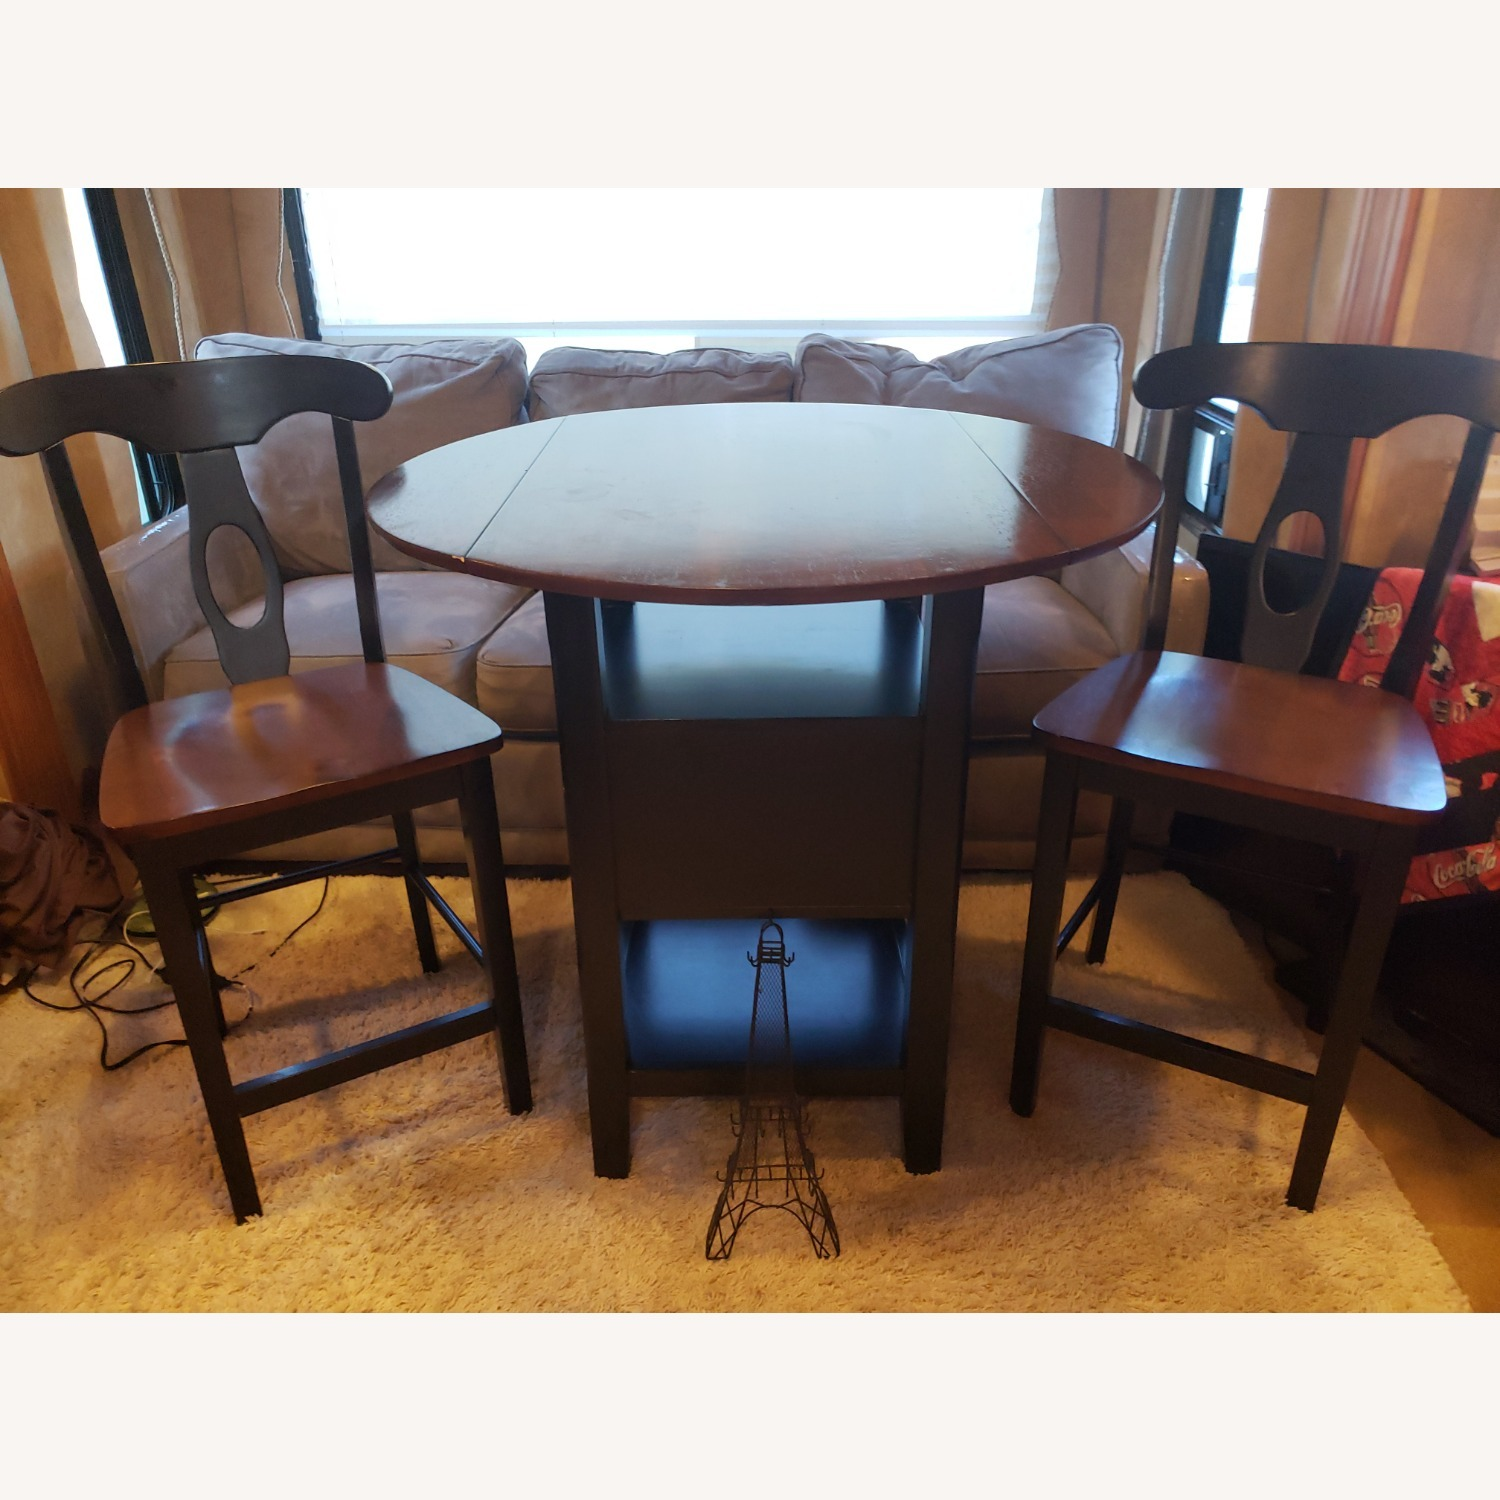 Bistro Dining Set with Drop Leaves - image-1